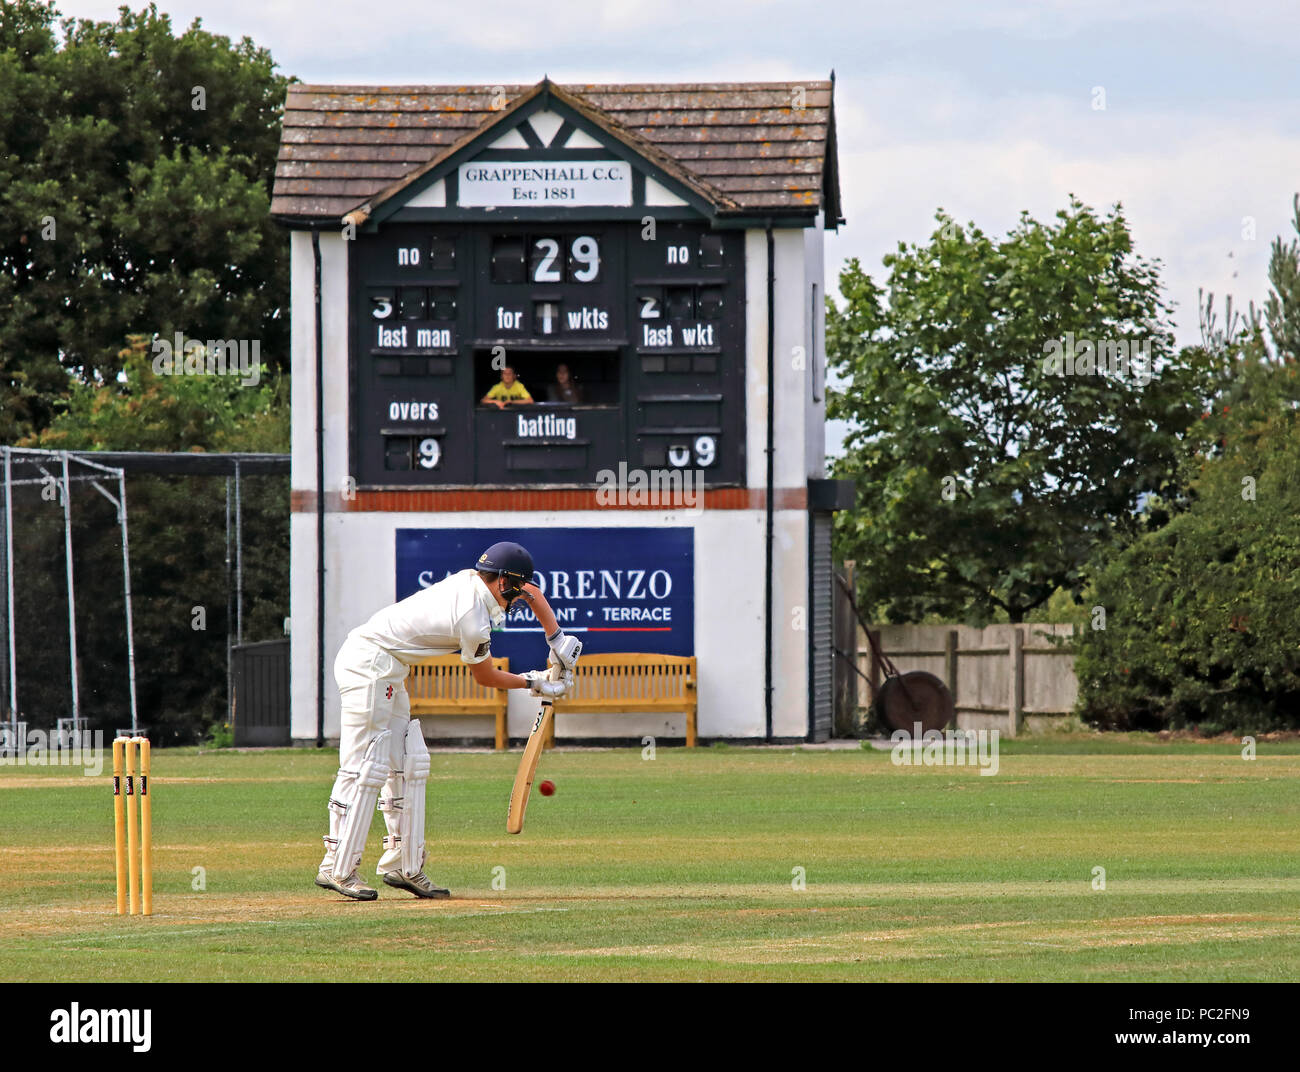 GoTonySmith,@HotpixUK,pitch,field,clubhouse,score board,at Broad Lane,Grappenhall,bat,batting,playing,Cricket Club,Cheshire league,cricket,runs,July 2018,white,whites,sport,Grappenhall sports,Sport in warrington,Warrington sport,activity,active,men,men playing sport,competitive,Warrington,Cheshire,North West England,UK,fixture,fixtures,results,senior team,teams,match,report,new players